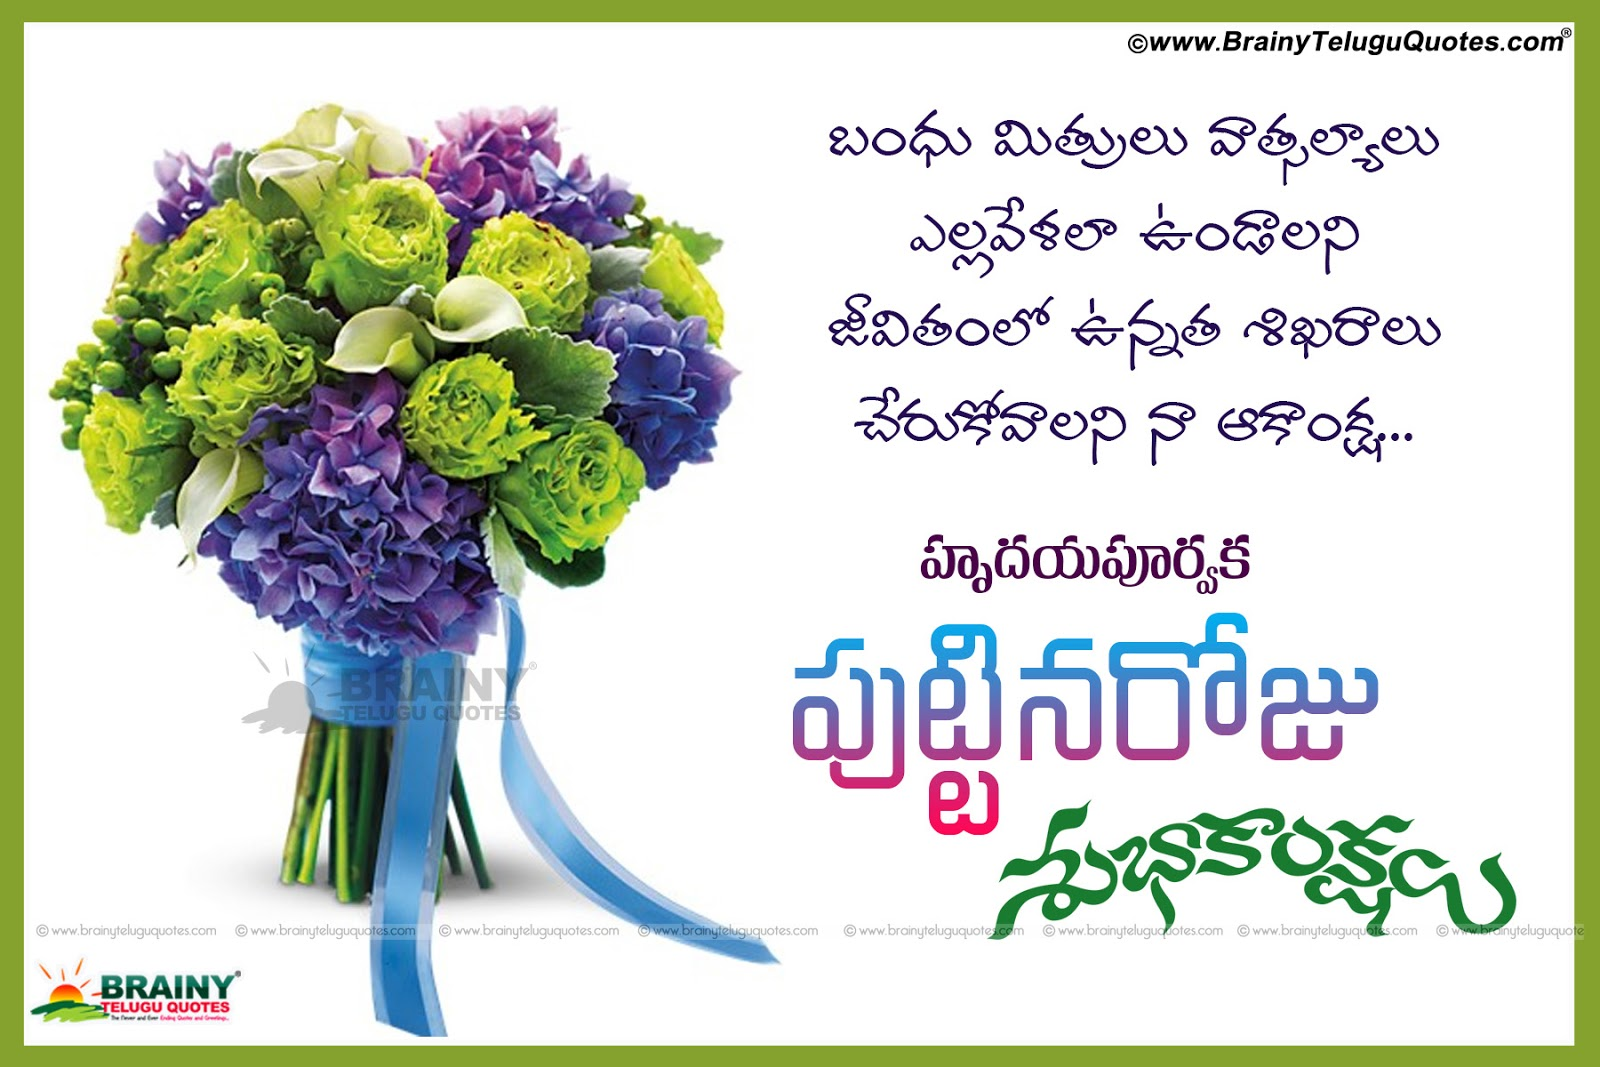 Happy birthday greetings in telugu choice image greeting card examples birthday wishes quotes and messages for family members and friends here is birthday greetings in telugubirthday kristyandbryce Gallery